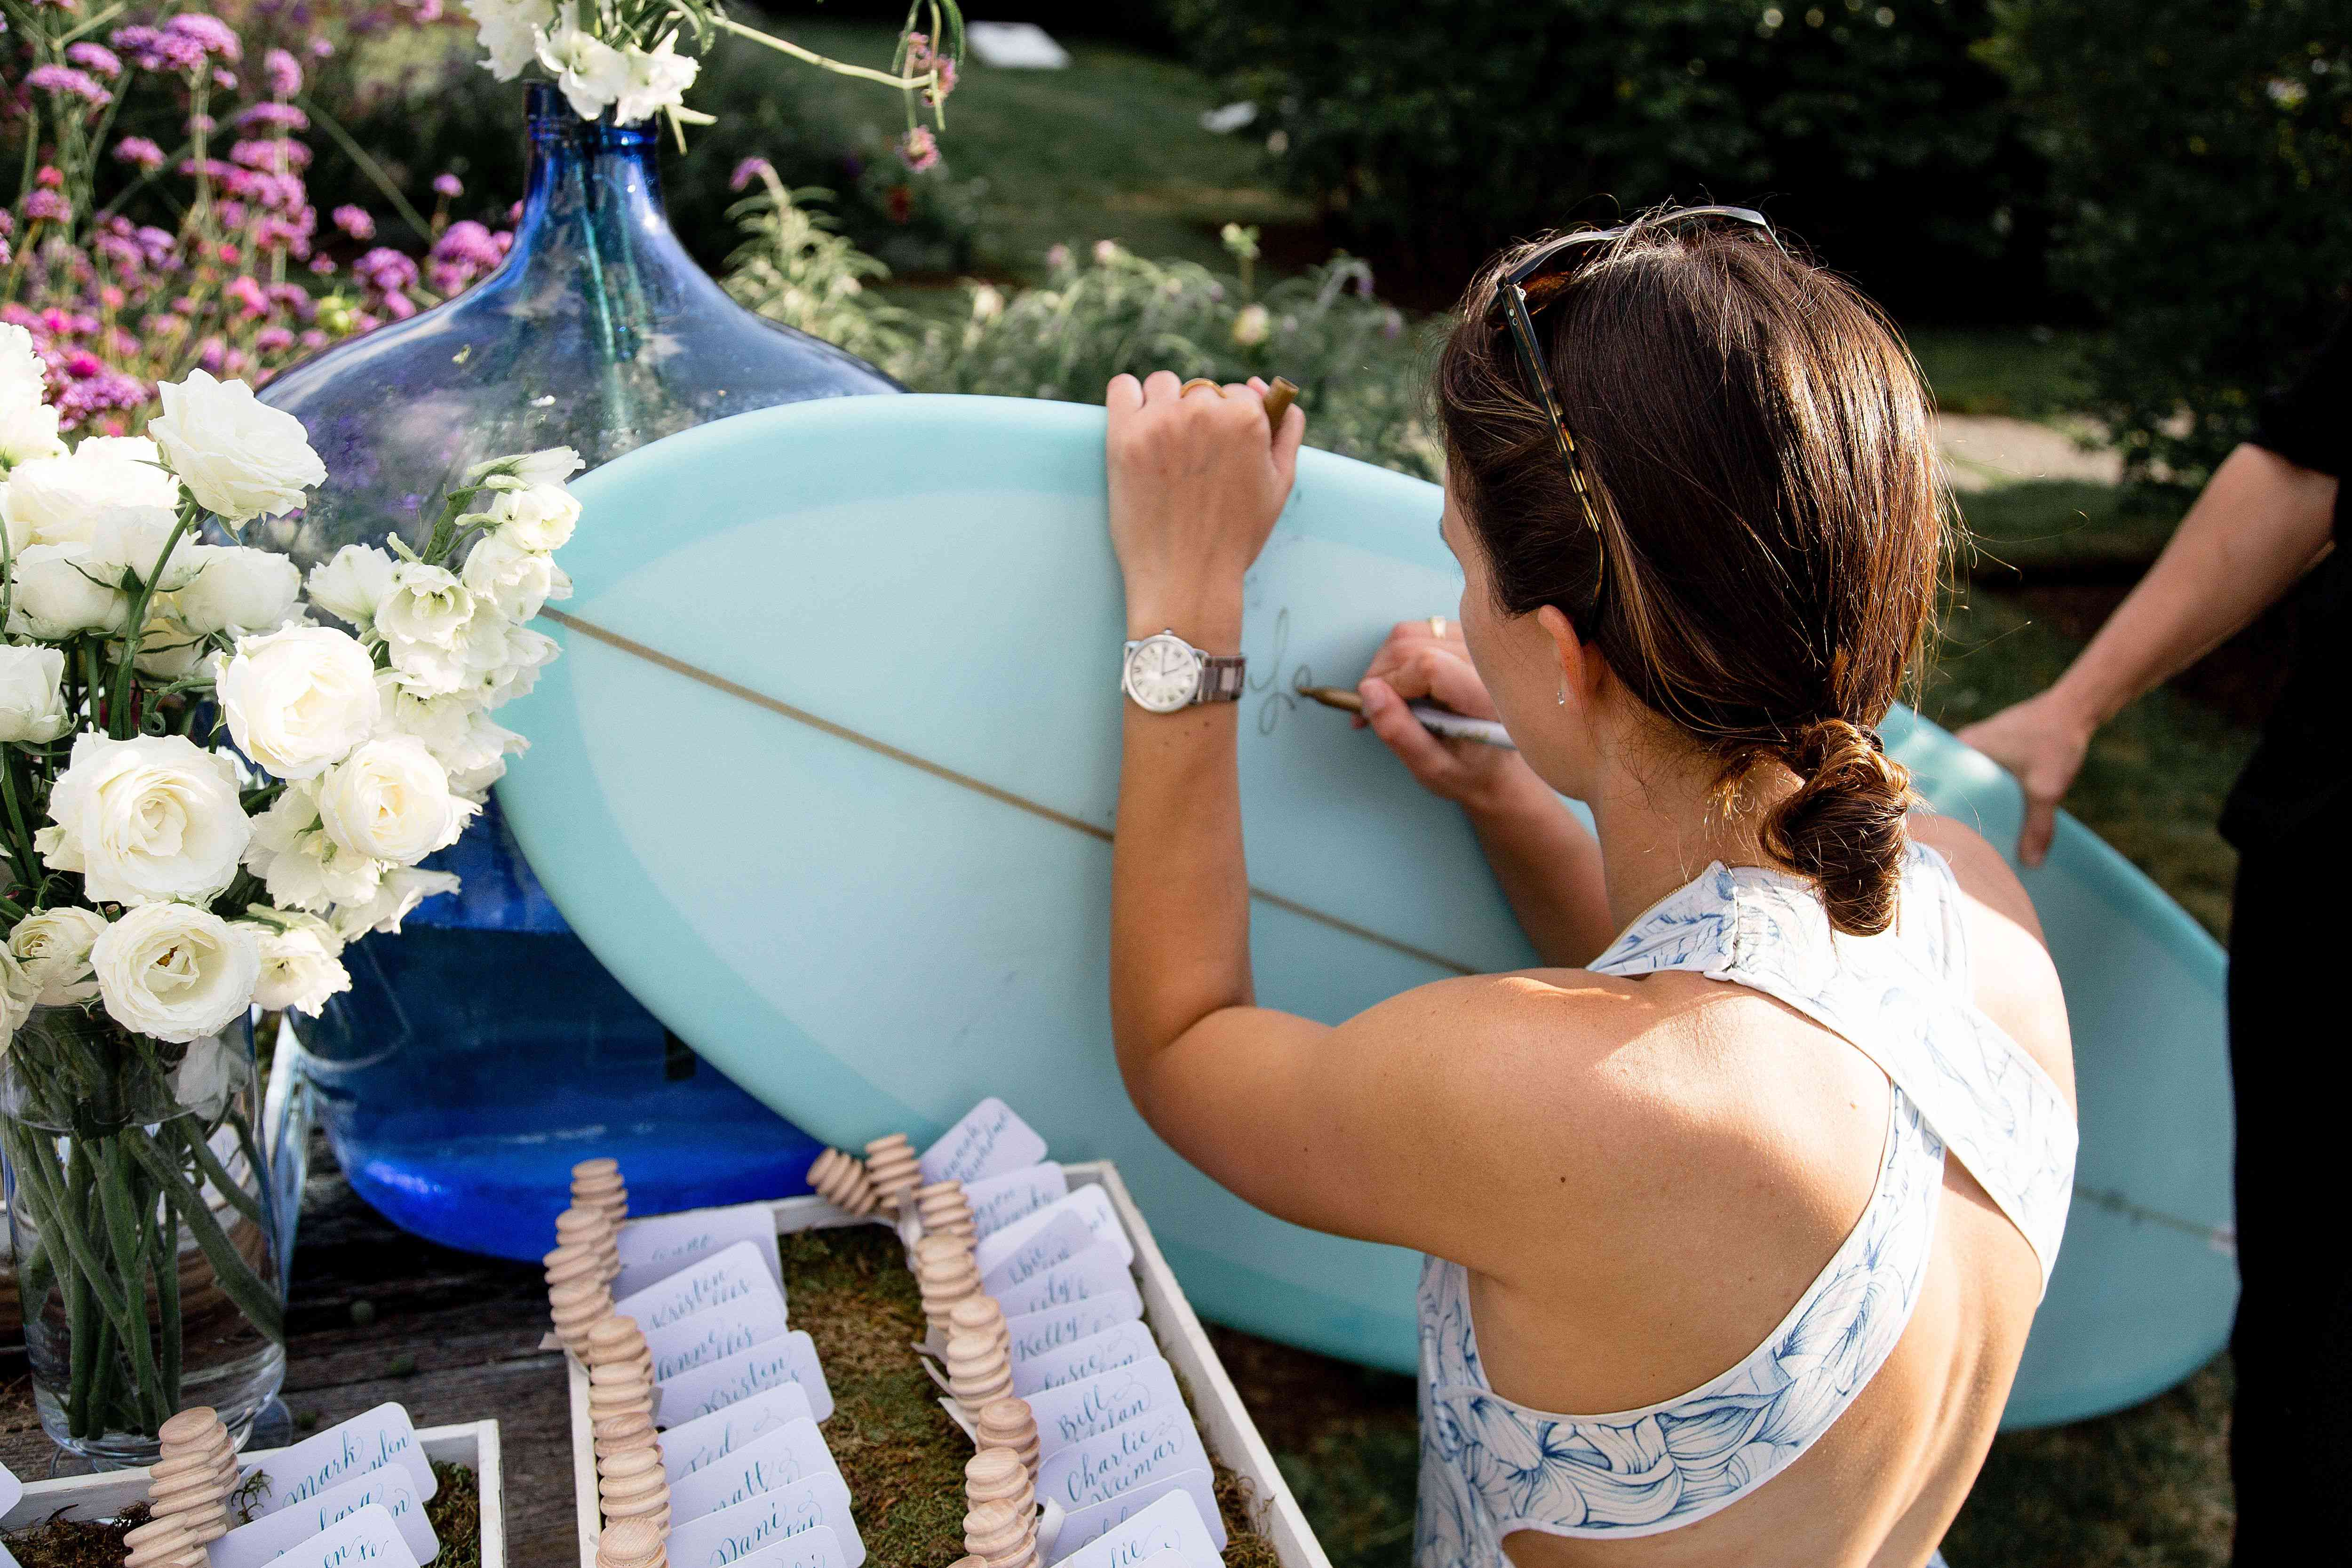 A guest signing a surfboard at a wedding